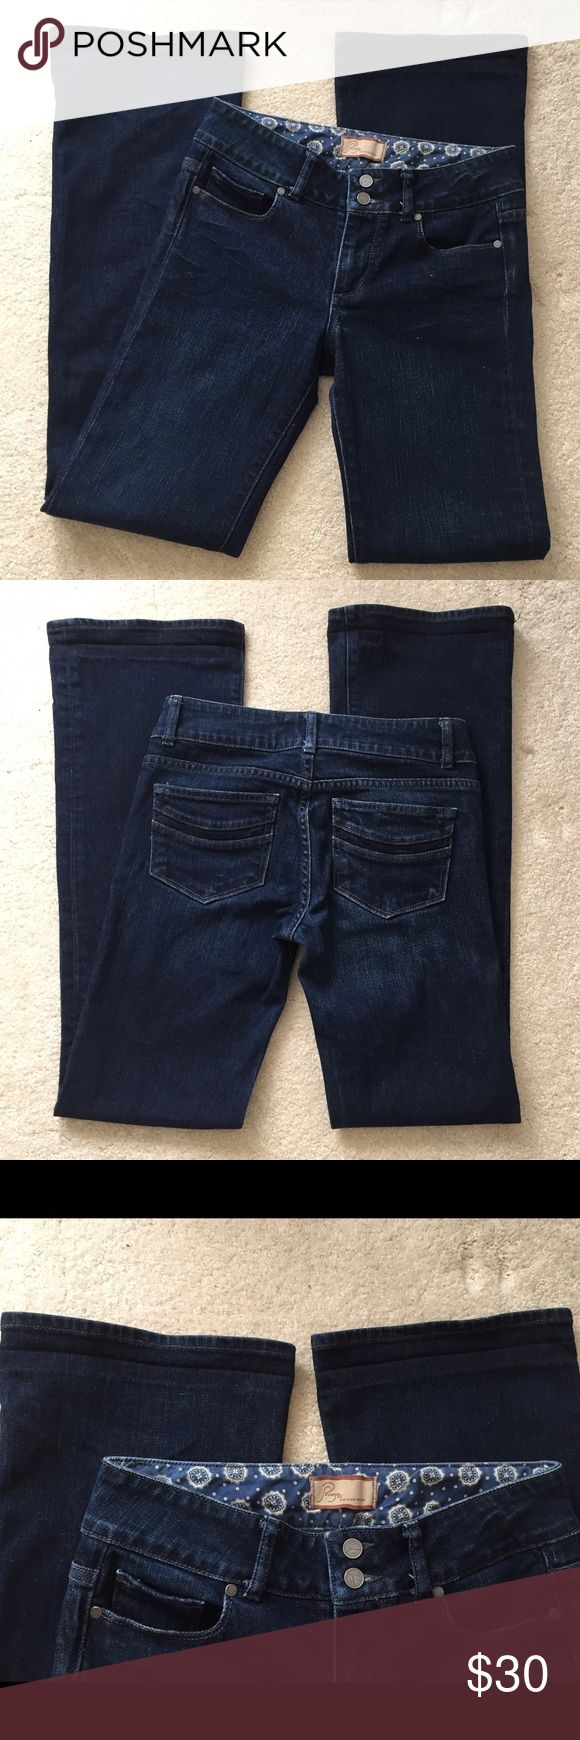 """Paige Hidden Hills high rise bootcut jeans 26/27 This is a beautifully unique sample pair that I'm so sad I'll never fit into again! 😢 it's the hidden hills high rise bootcut. Mightnight wash. **It does not have the size tag, but fits like a 26 (maybe a small 27). This is an older pair in EXCELLENT CONDITION. Still needs to be broken in!  *The only wear is some creasing/slight lightening at the hems from when I fold hemmed it, but otherwise perfect! Measurements: waist: 14"""", rise: 8.5""""…"""